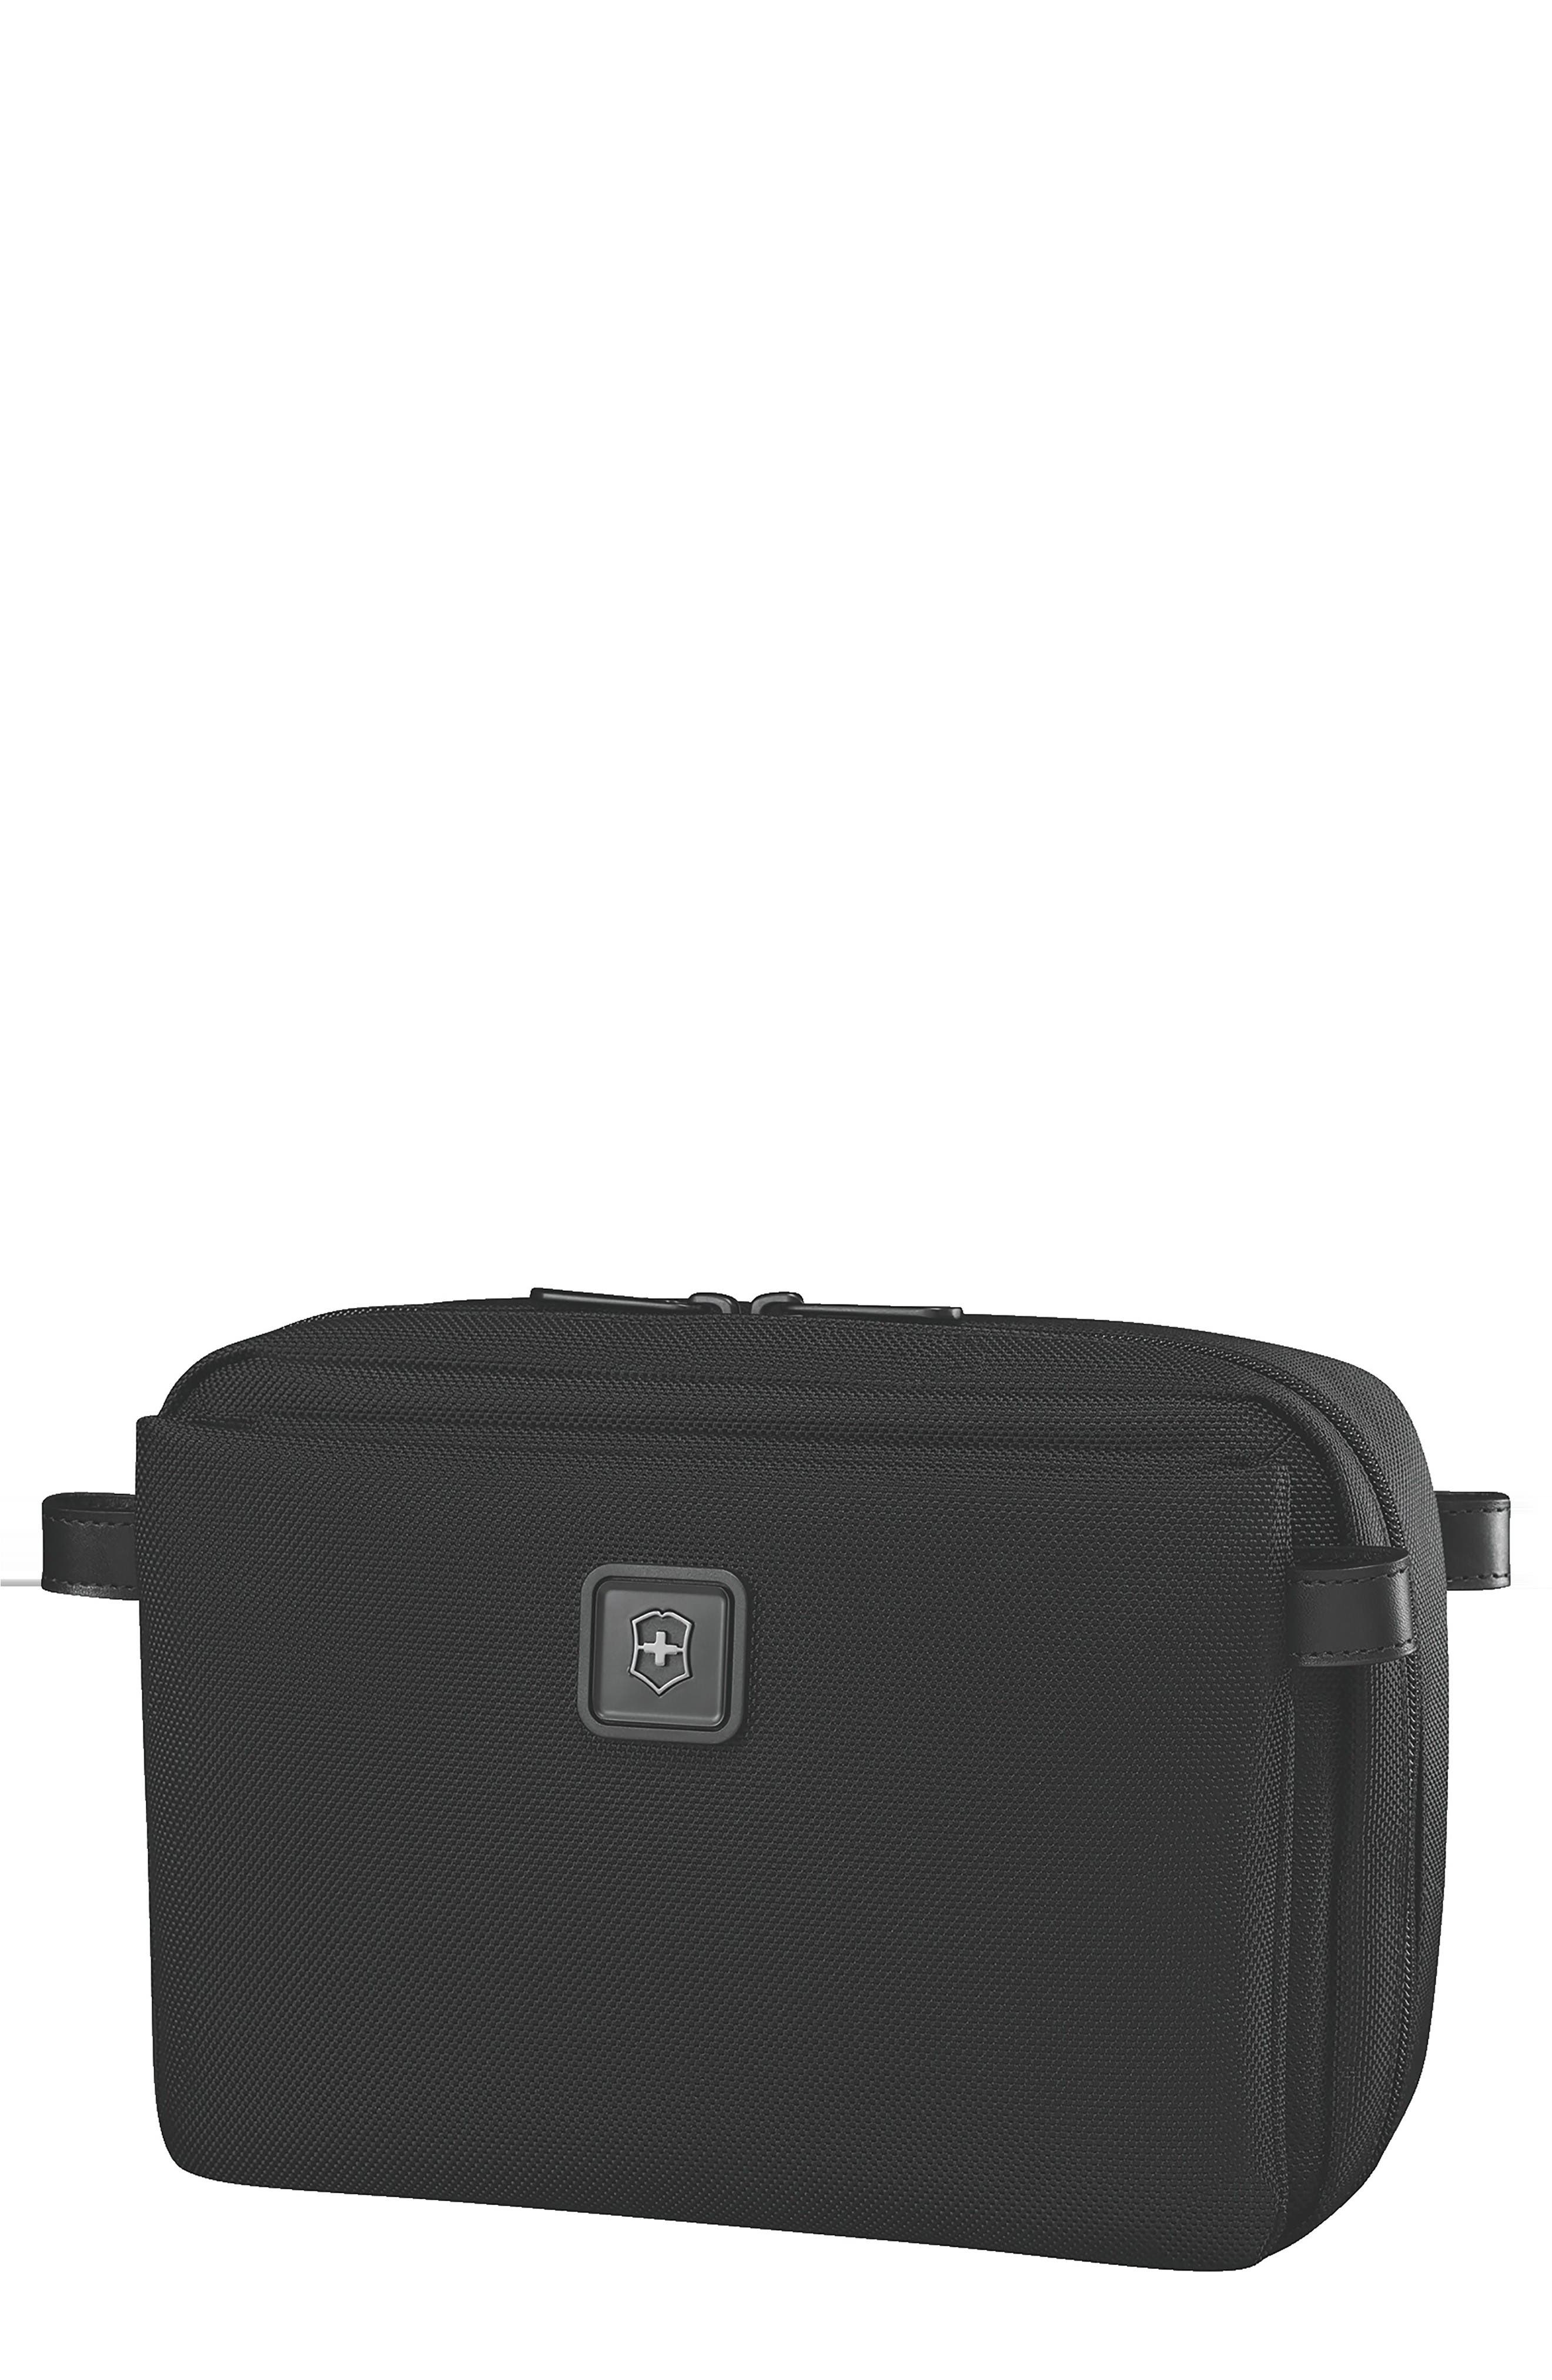 Lexicon 2.0 Travel Kit,                         Main,                         color, Black